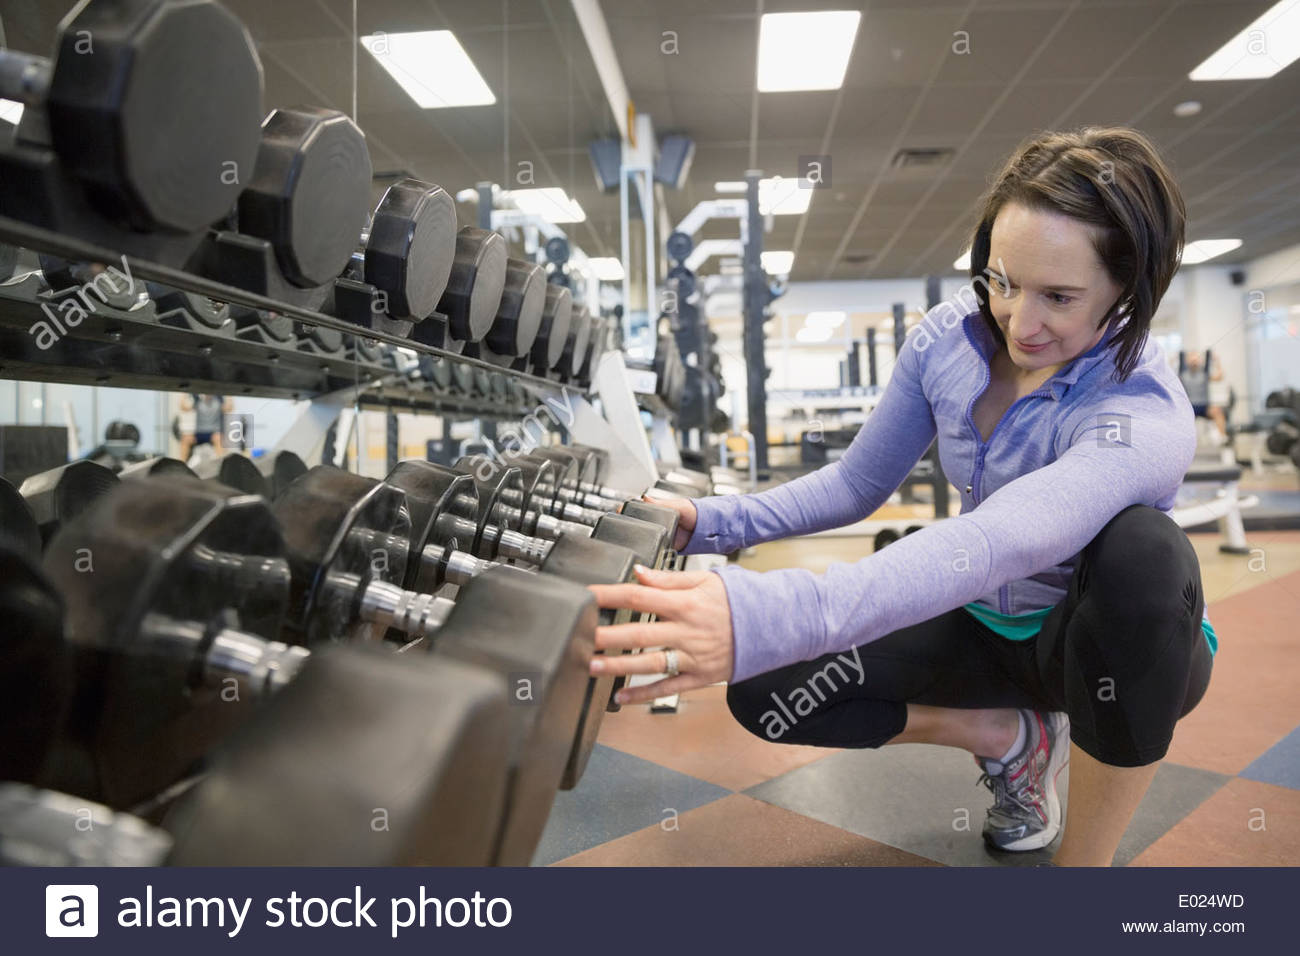 Woman looking at dumbbells on rack at gym - Stock Image